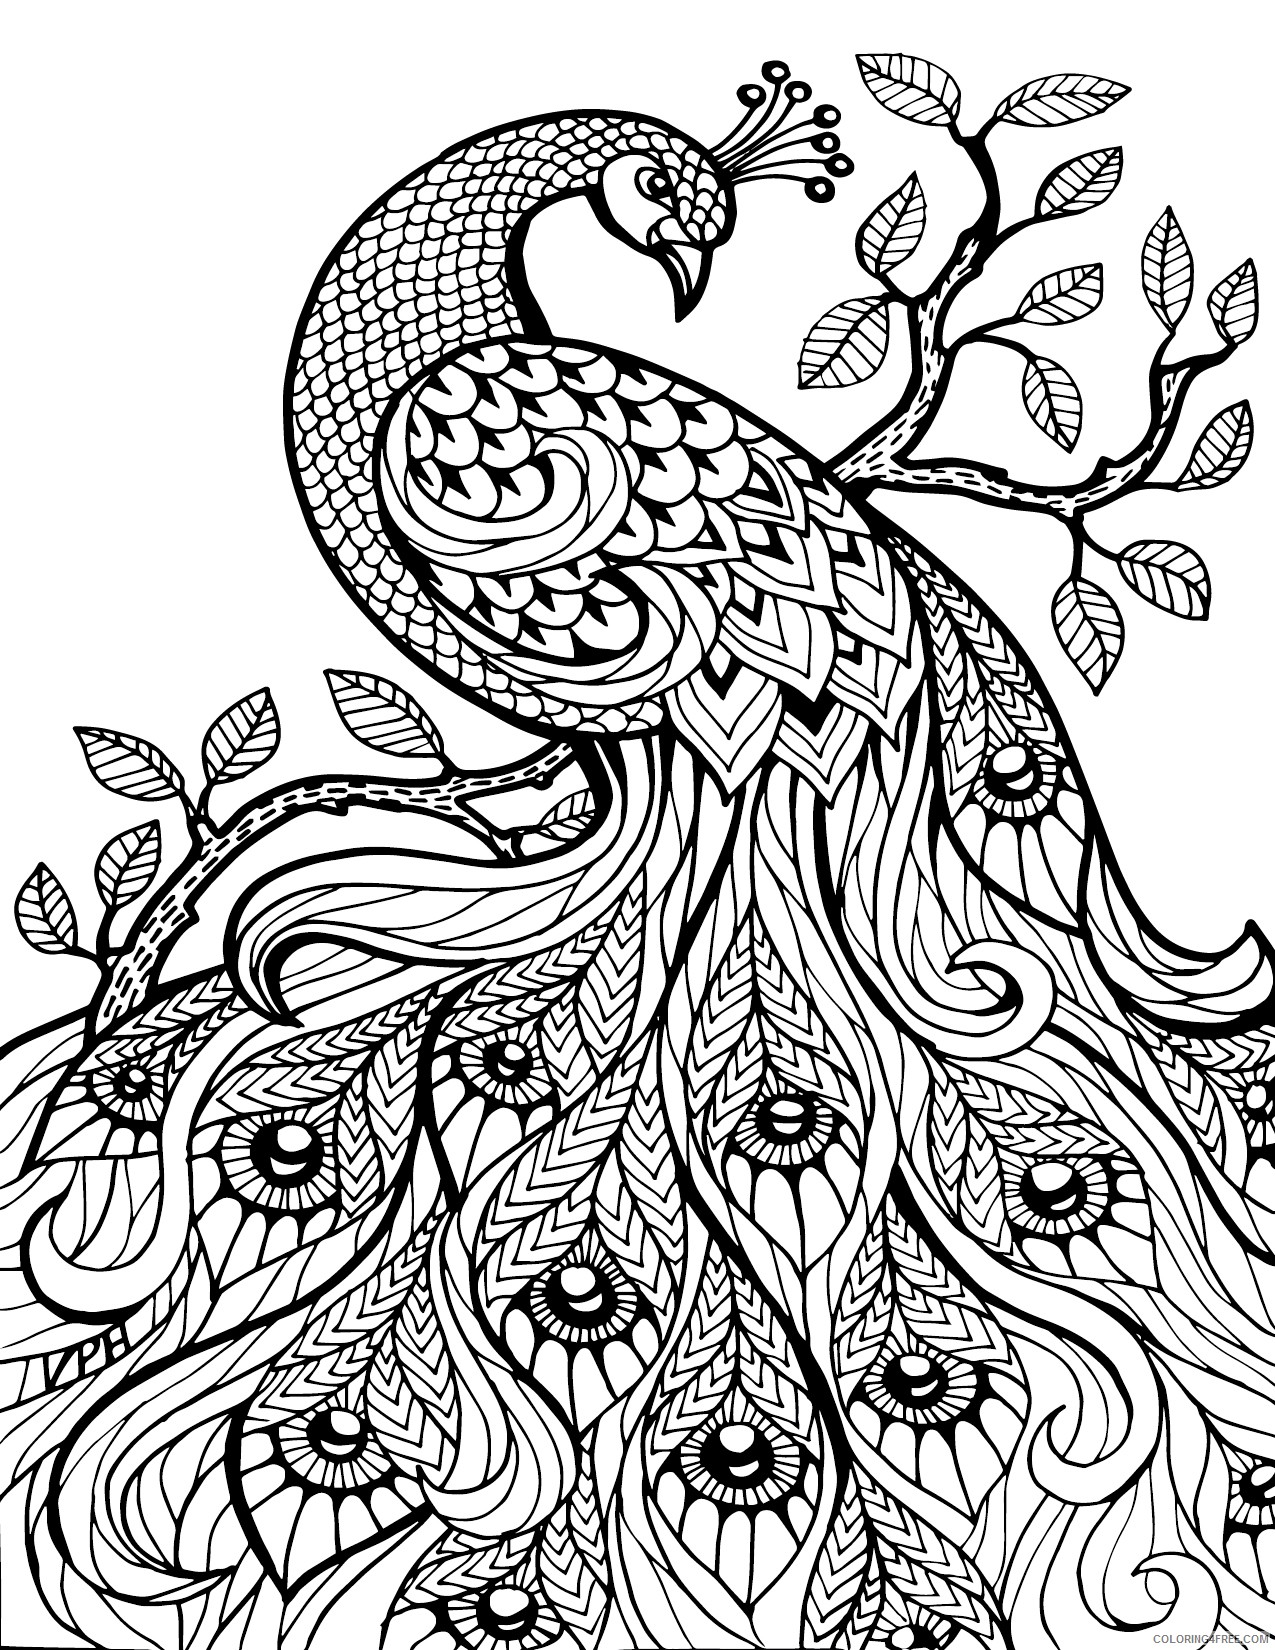 wolf coloring pages for adults free wolf coloring pages for adults printable to download for adults wolf coloring pages